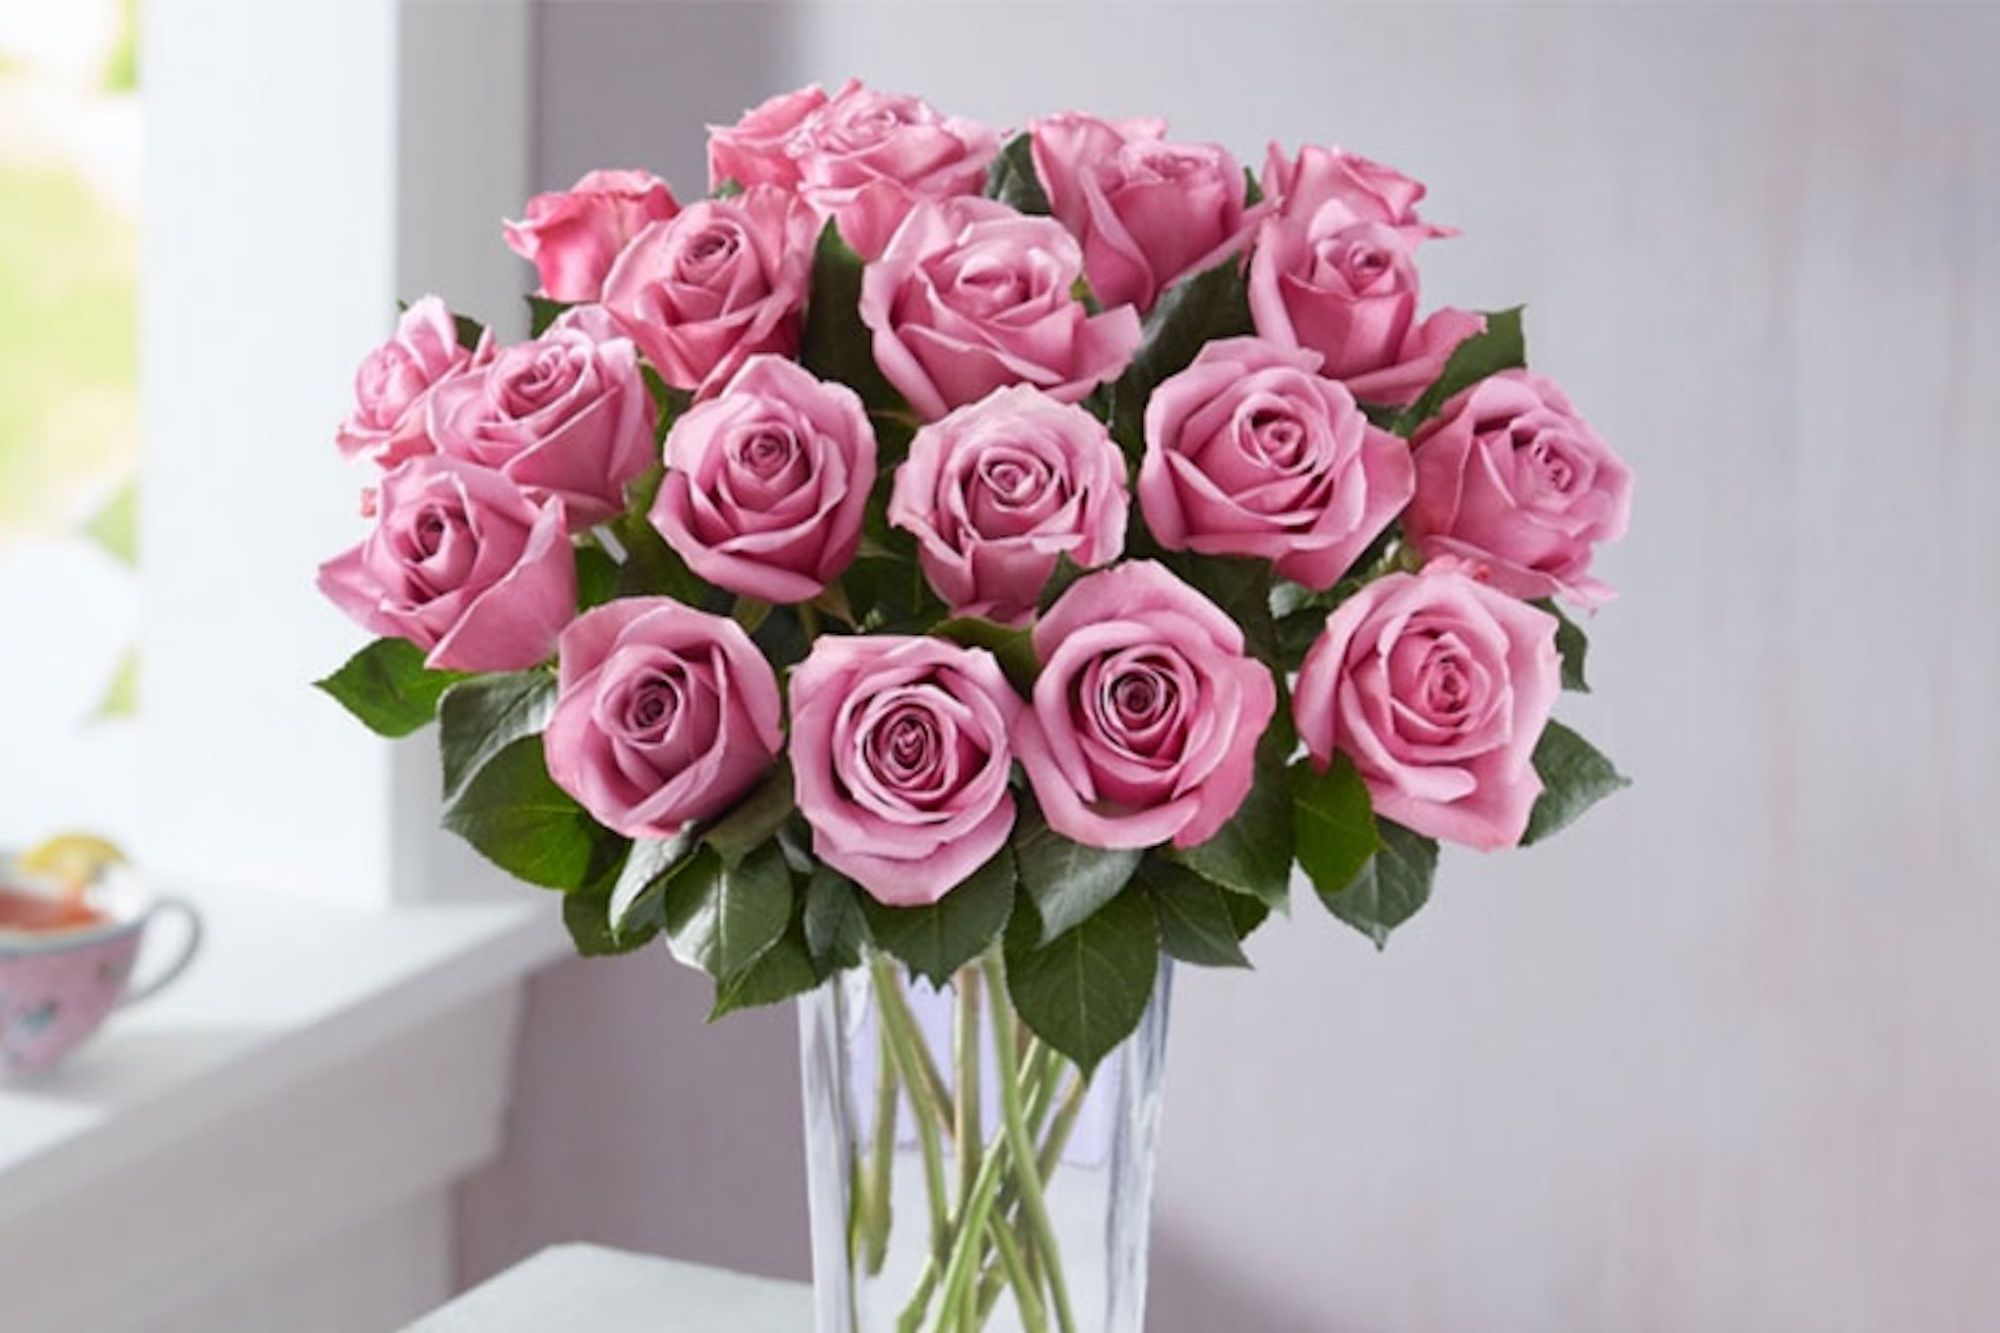 Send Flowers to Your Loved Ones This Valentine's Day for a Great Price